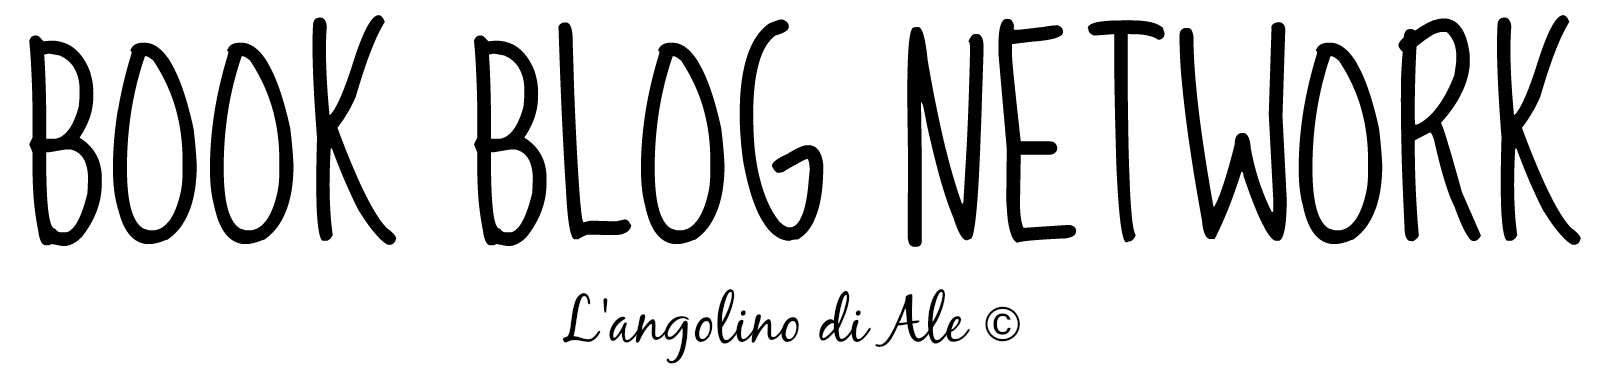 Book Blog Network - L'angolino di Ale